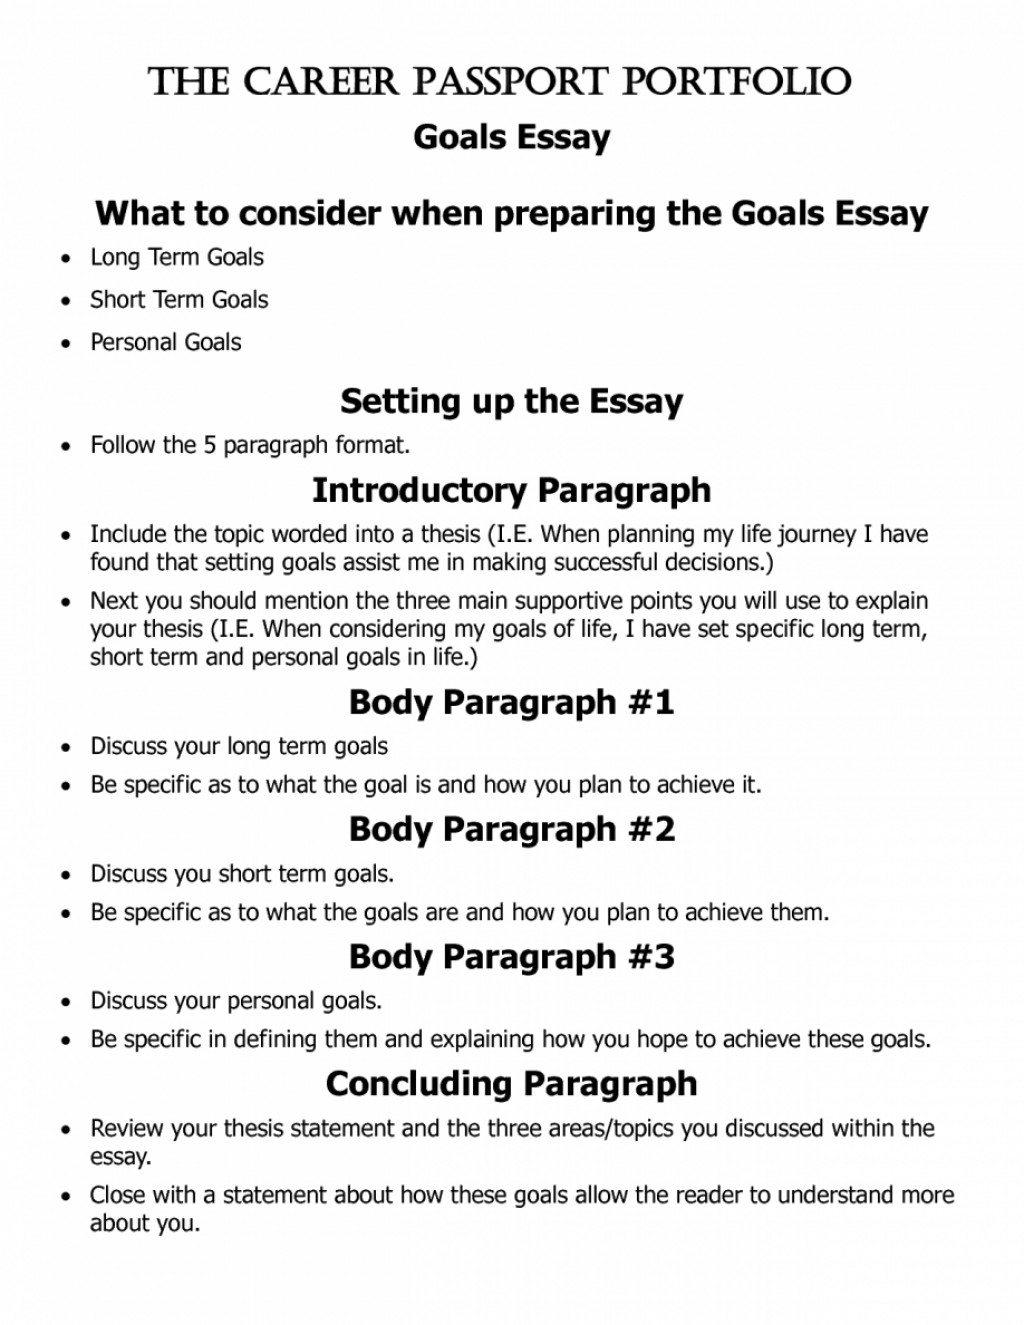 015 Essay Example Goals Short And Long Term Pevita L Awesome Career Sample Graduate School Future For College High Large